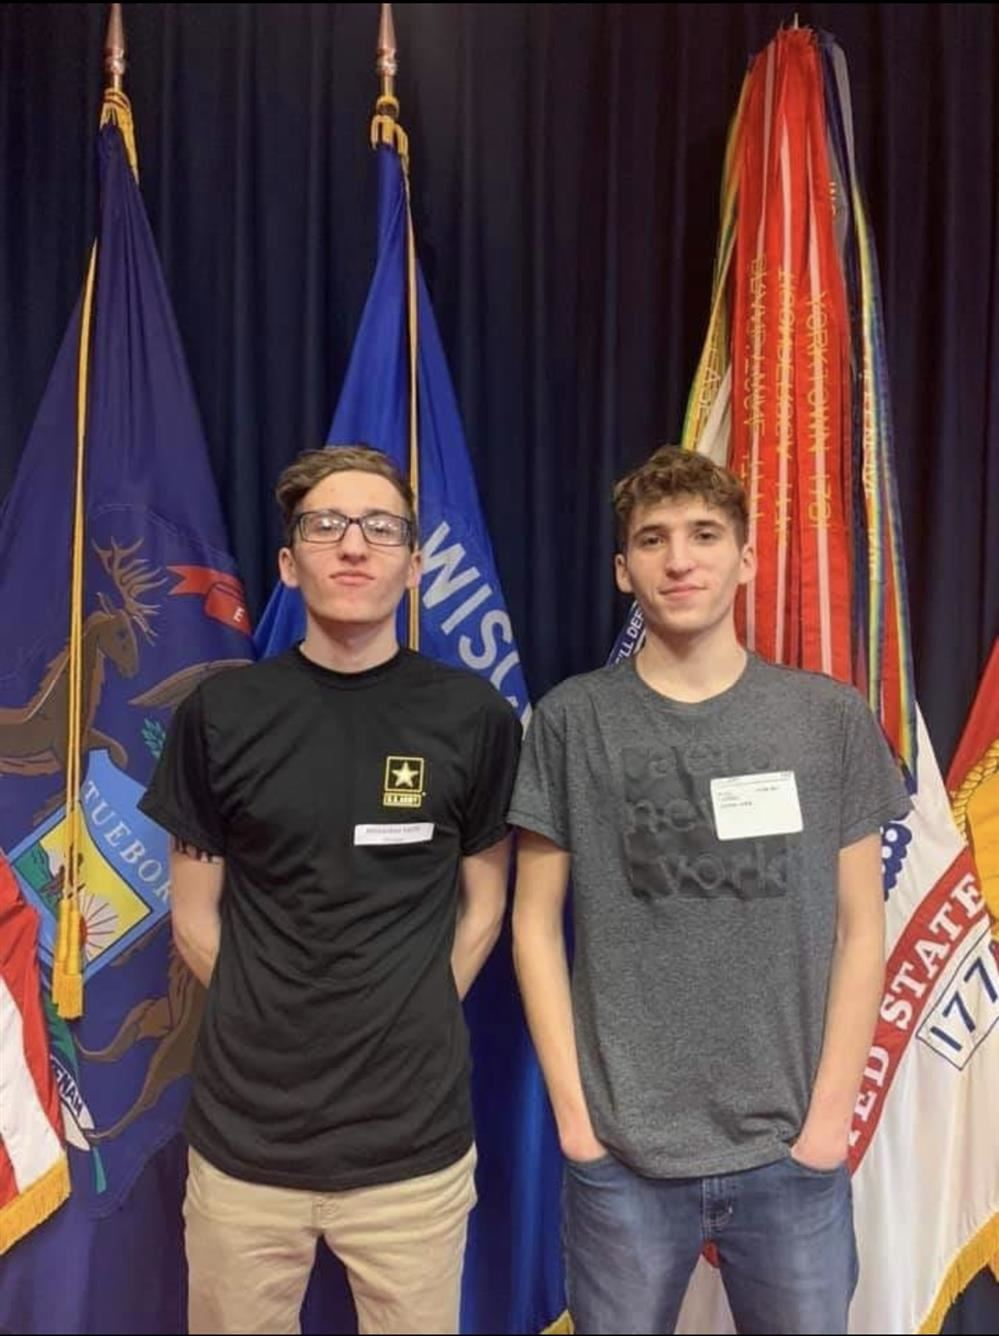 Oconto High School twins join Army, receives enlistment oath from Space (April 8, 2020)